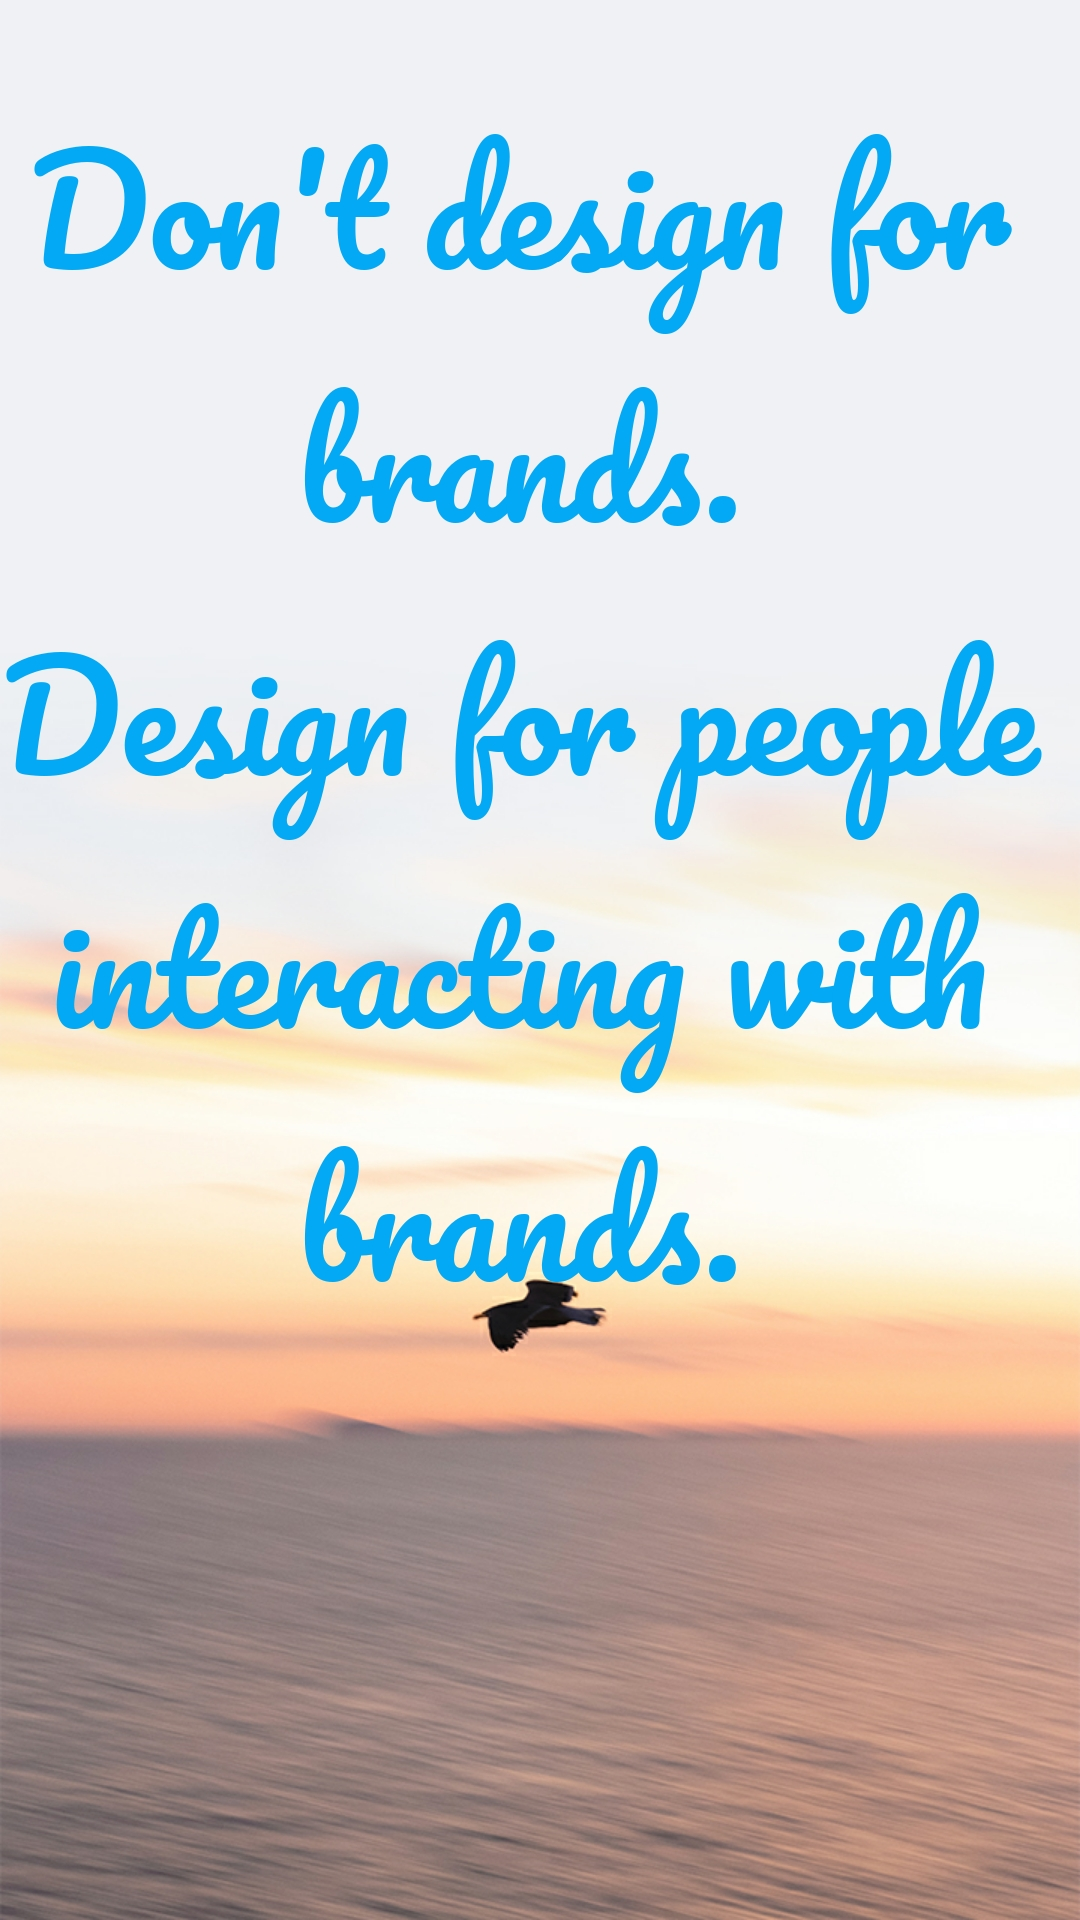 Don't design for brands. Design for people interacting with brands.